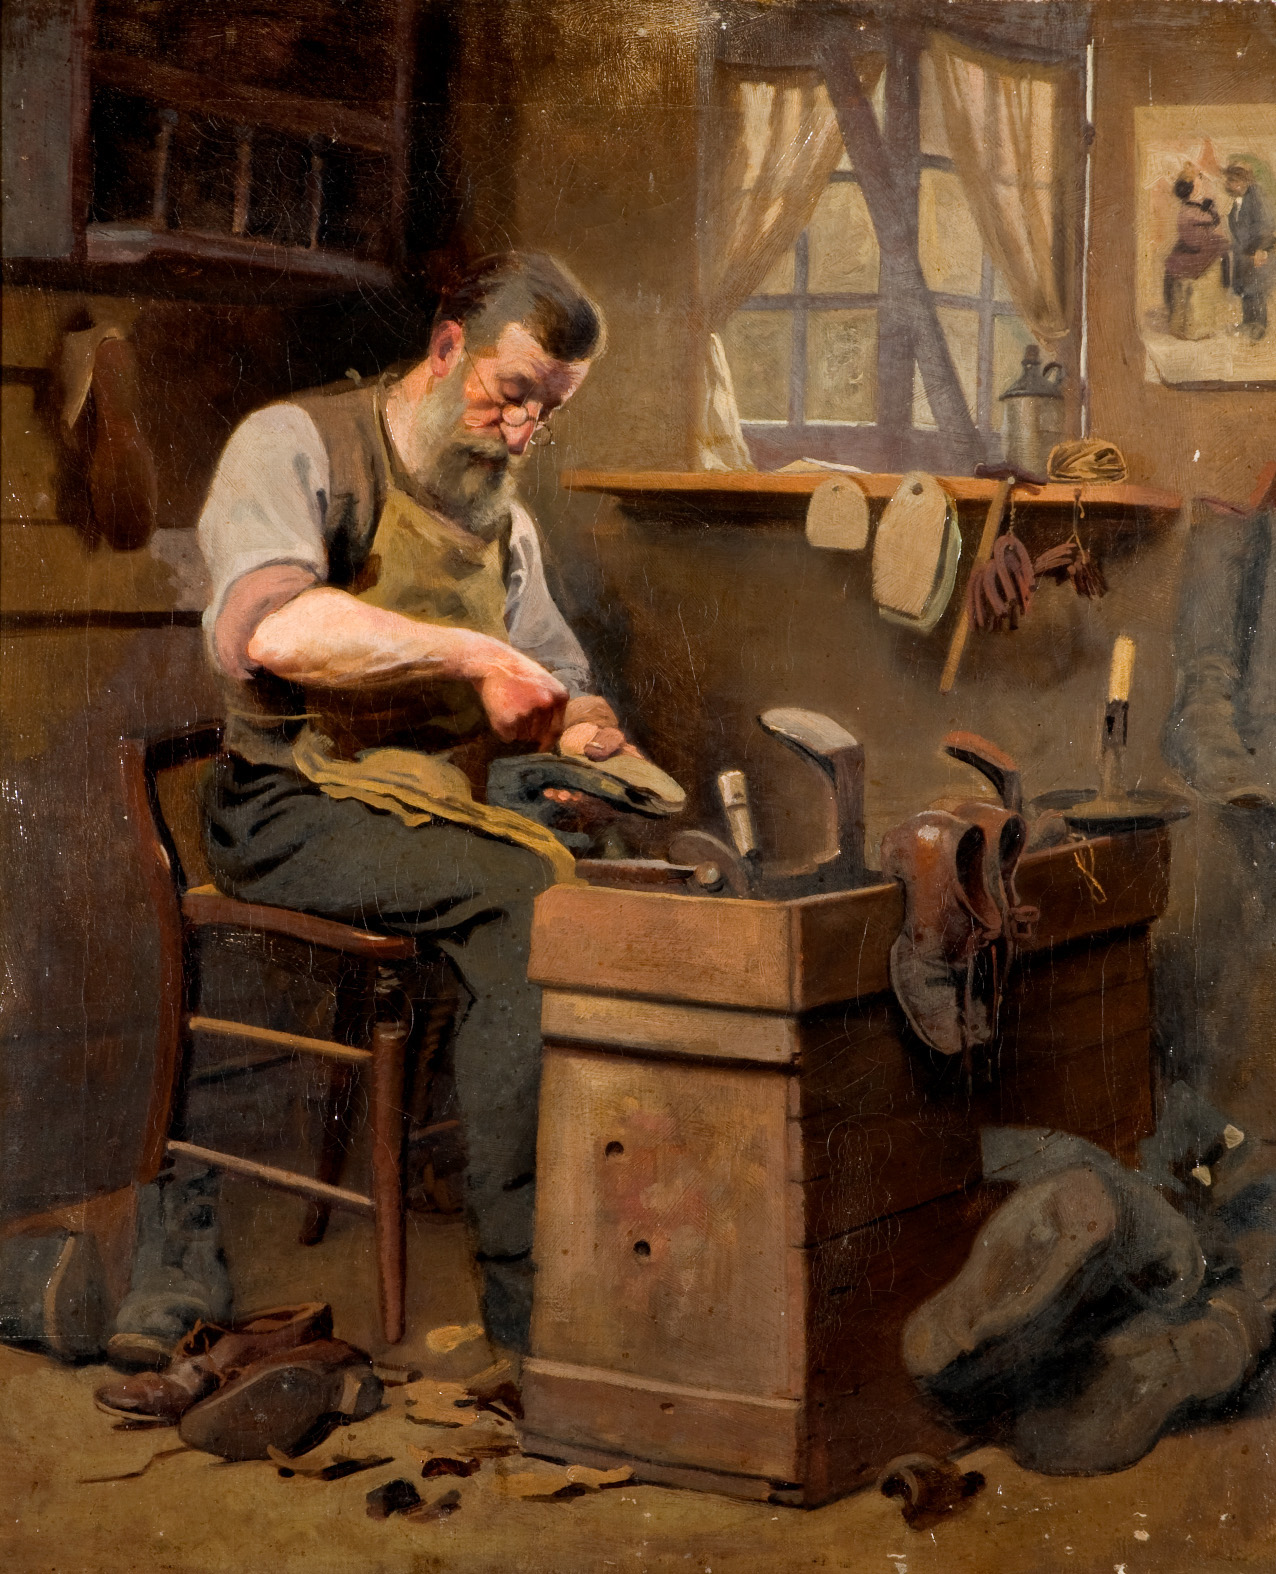 Frederick Hall's oil painting titled Experienced Hands - The art of the shoemaker